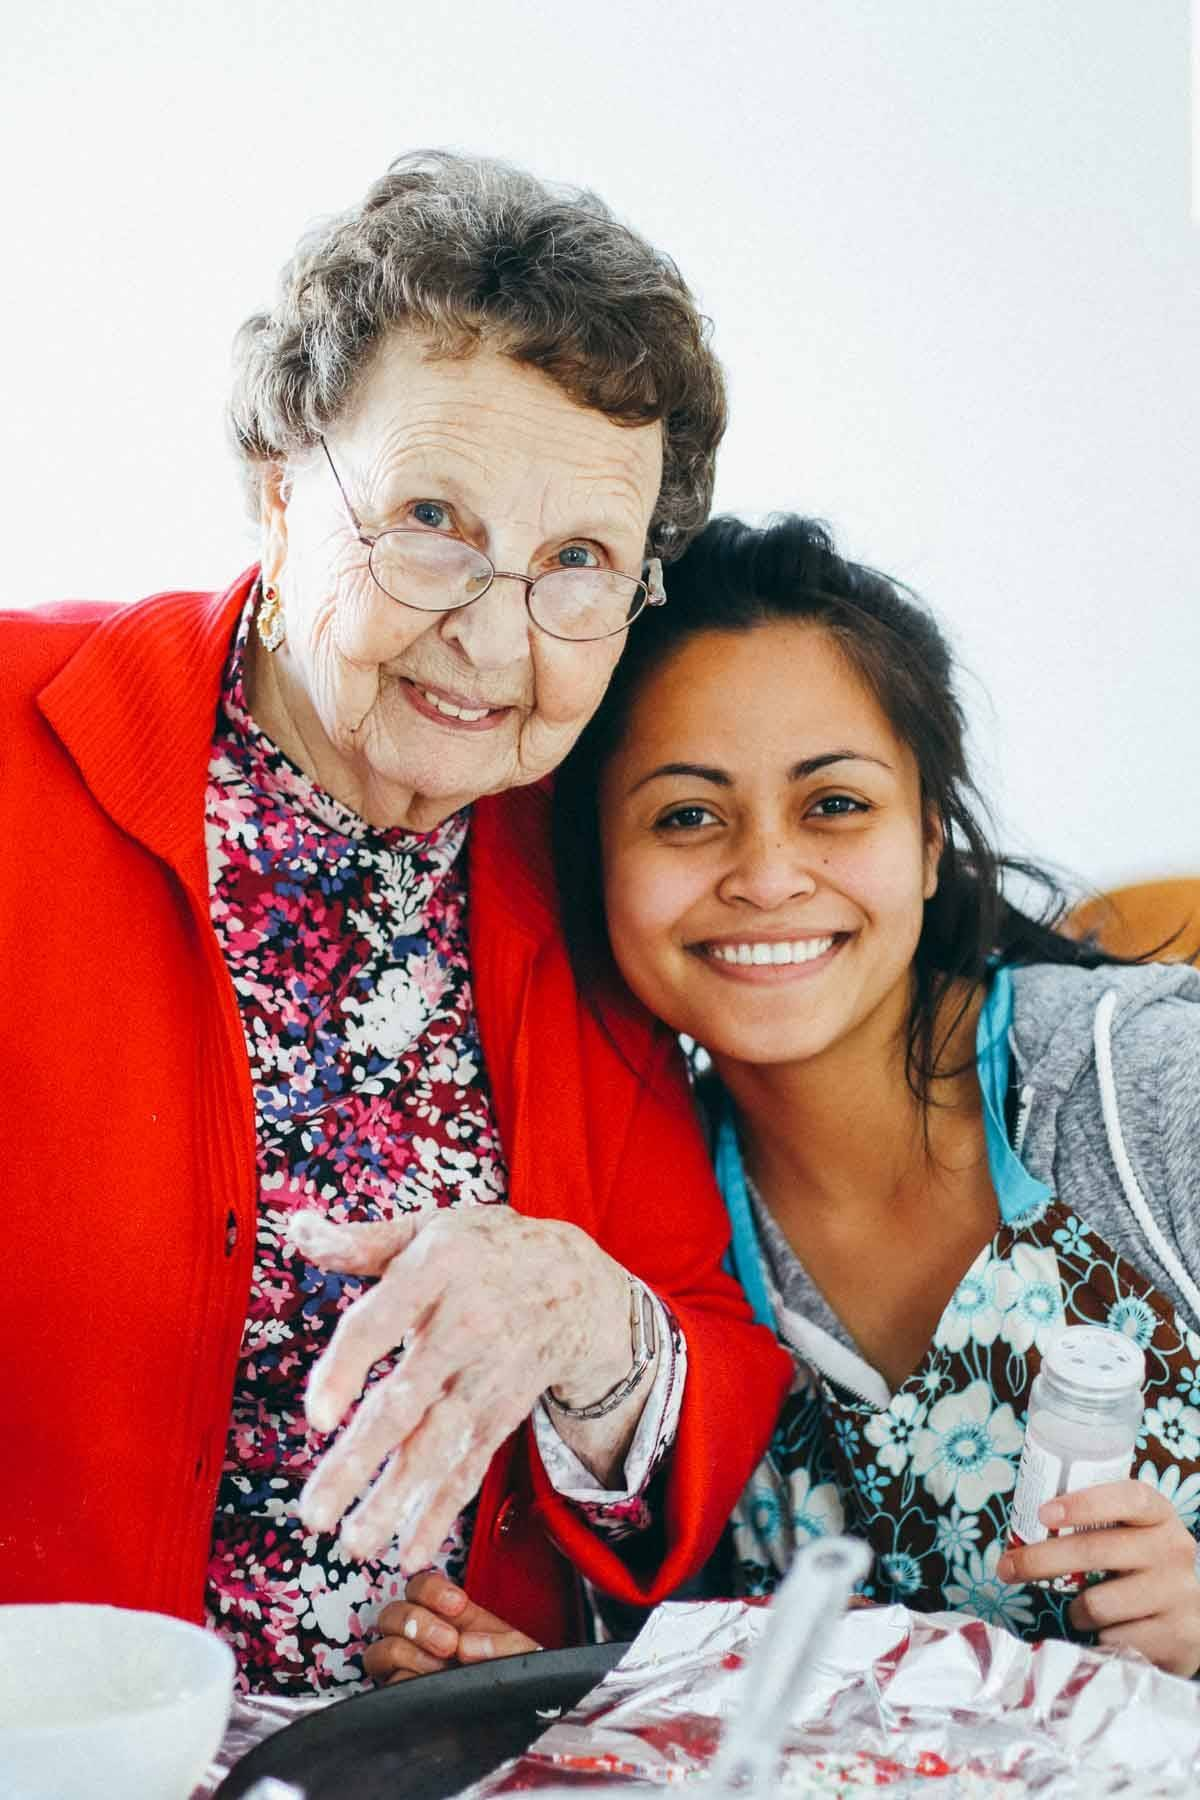 Elderly woman smiling with a young girl.